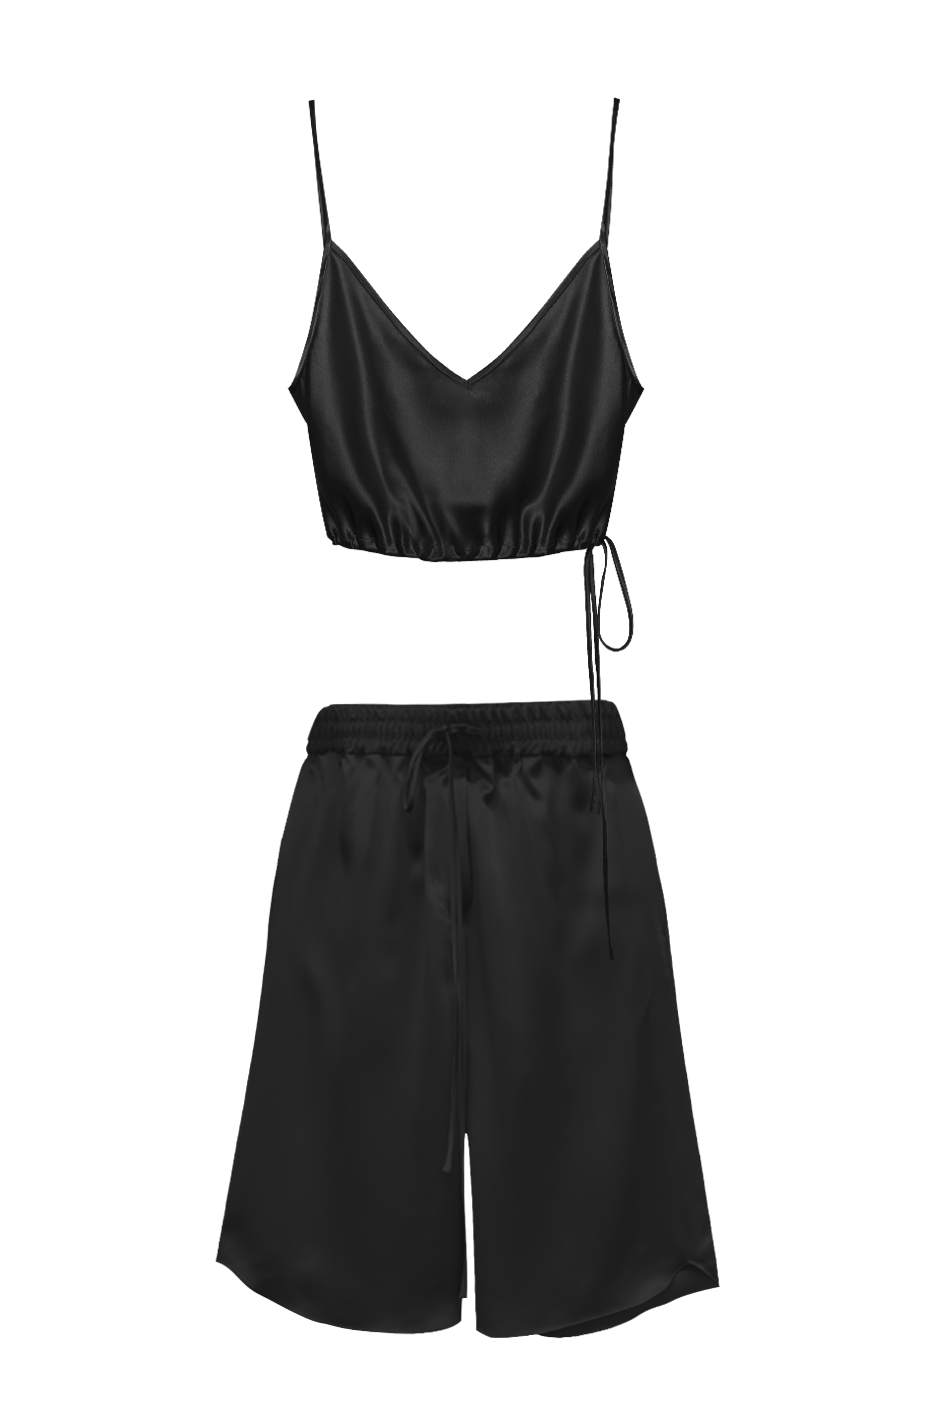 KES Time Out Set, Silk Bralette & Bermudas - Black